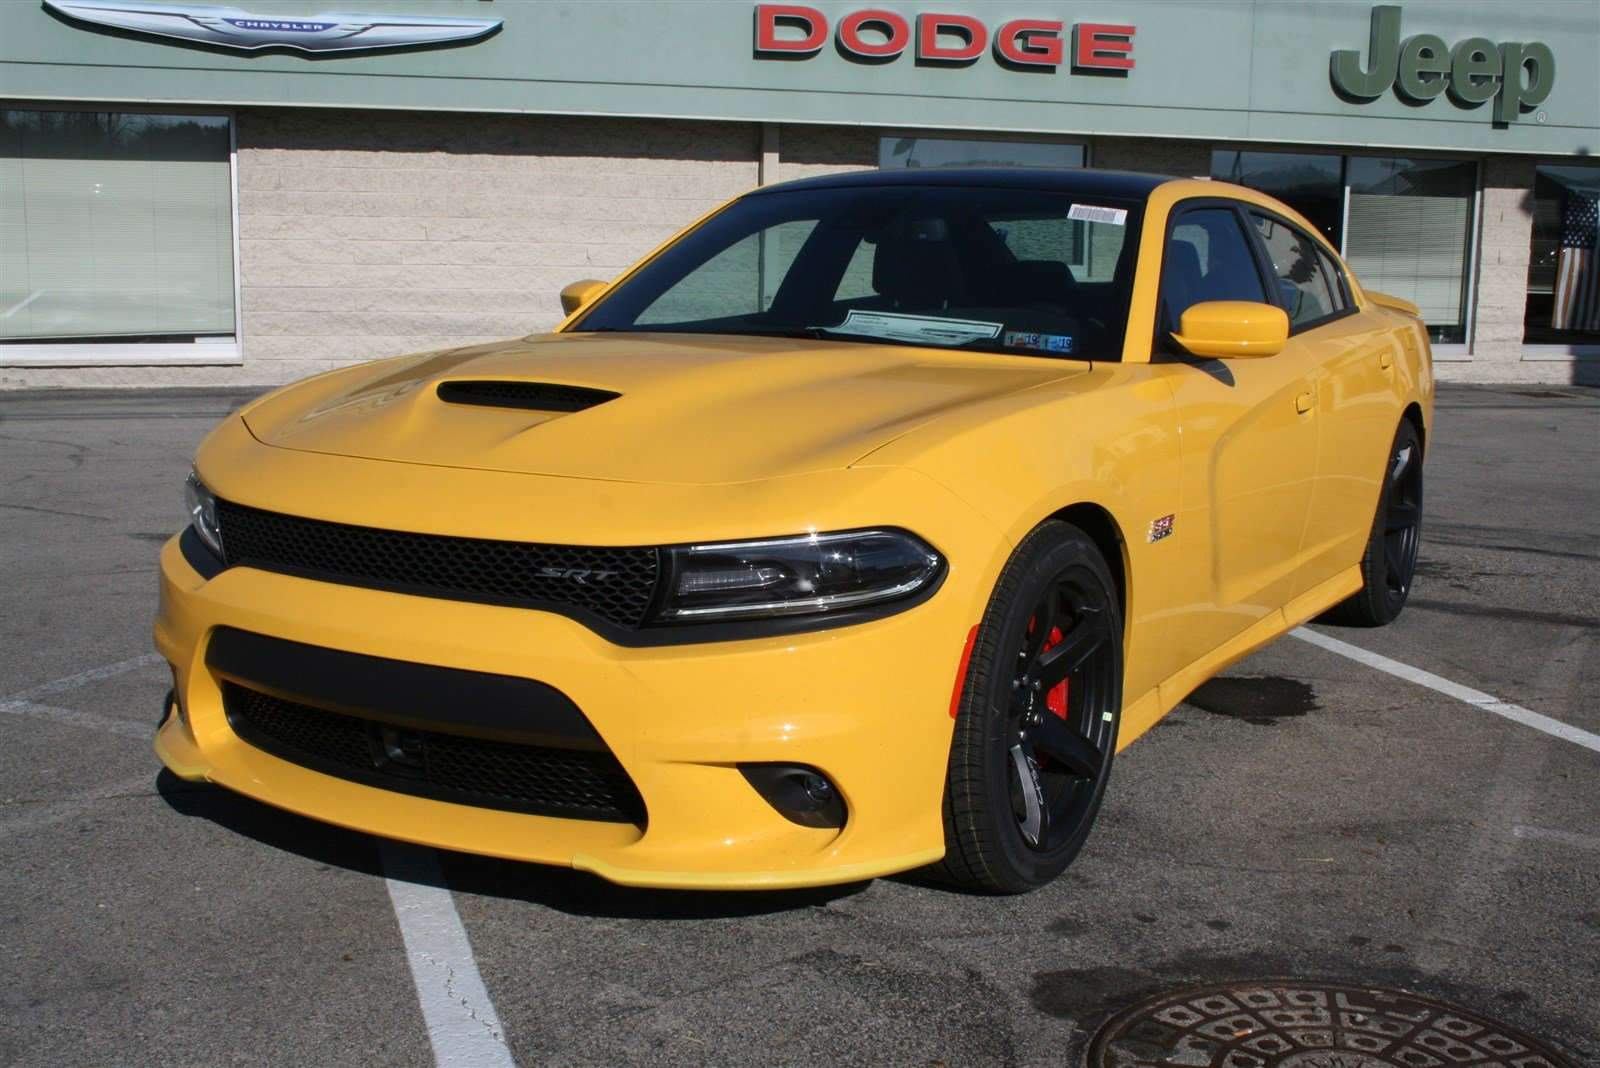 New 2018 DODGE Charger SRT 392 Sedan in Greensburg D5177